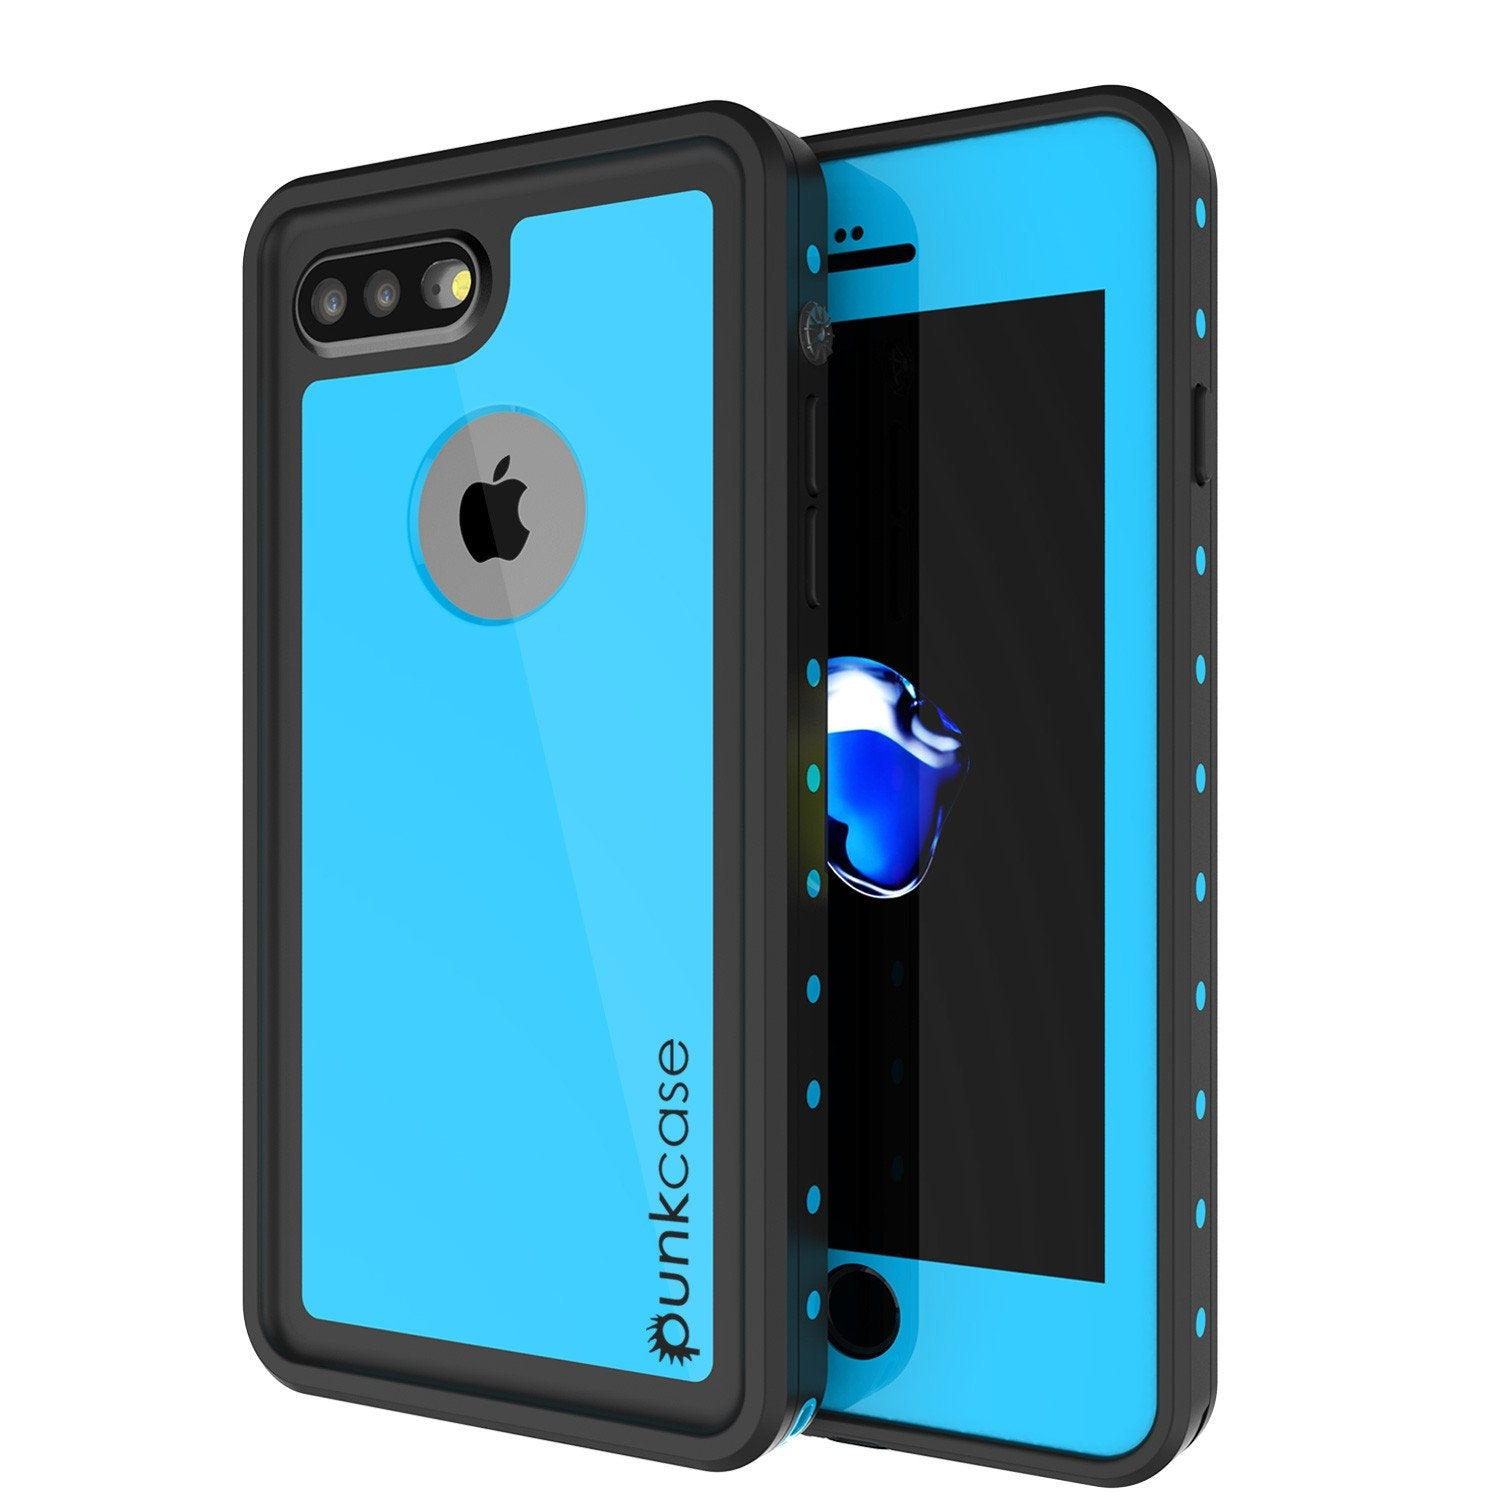 iPhone 8+ Plus Waterproof IP68 Case, Punkcase [Light Blue] [StudStar Series] [Slim Fit] [Dirtproof]